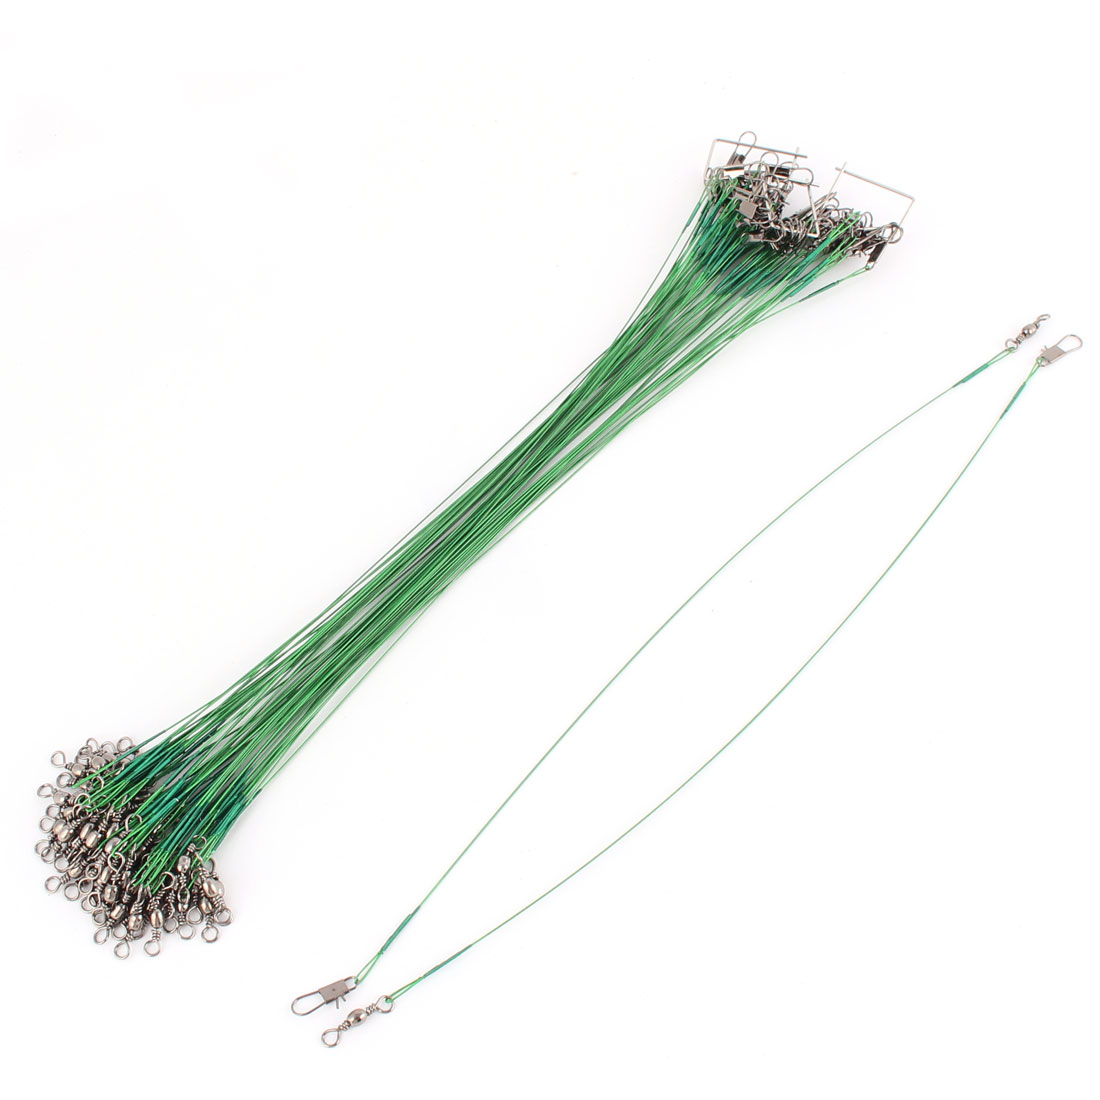 60pcs 25cm Length Stainless Steel Anti-bite Nonbite Fishing String Tackle Wire Lines Pin Ring